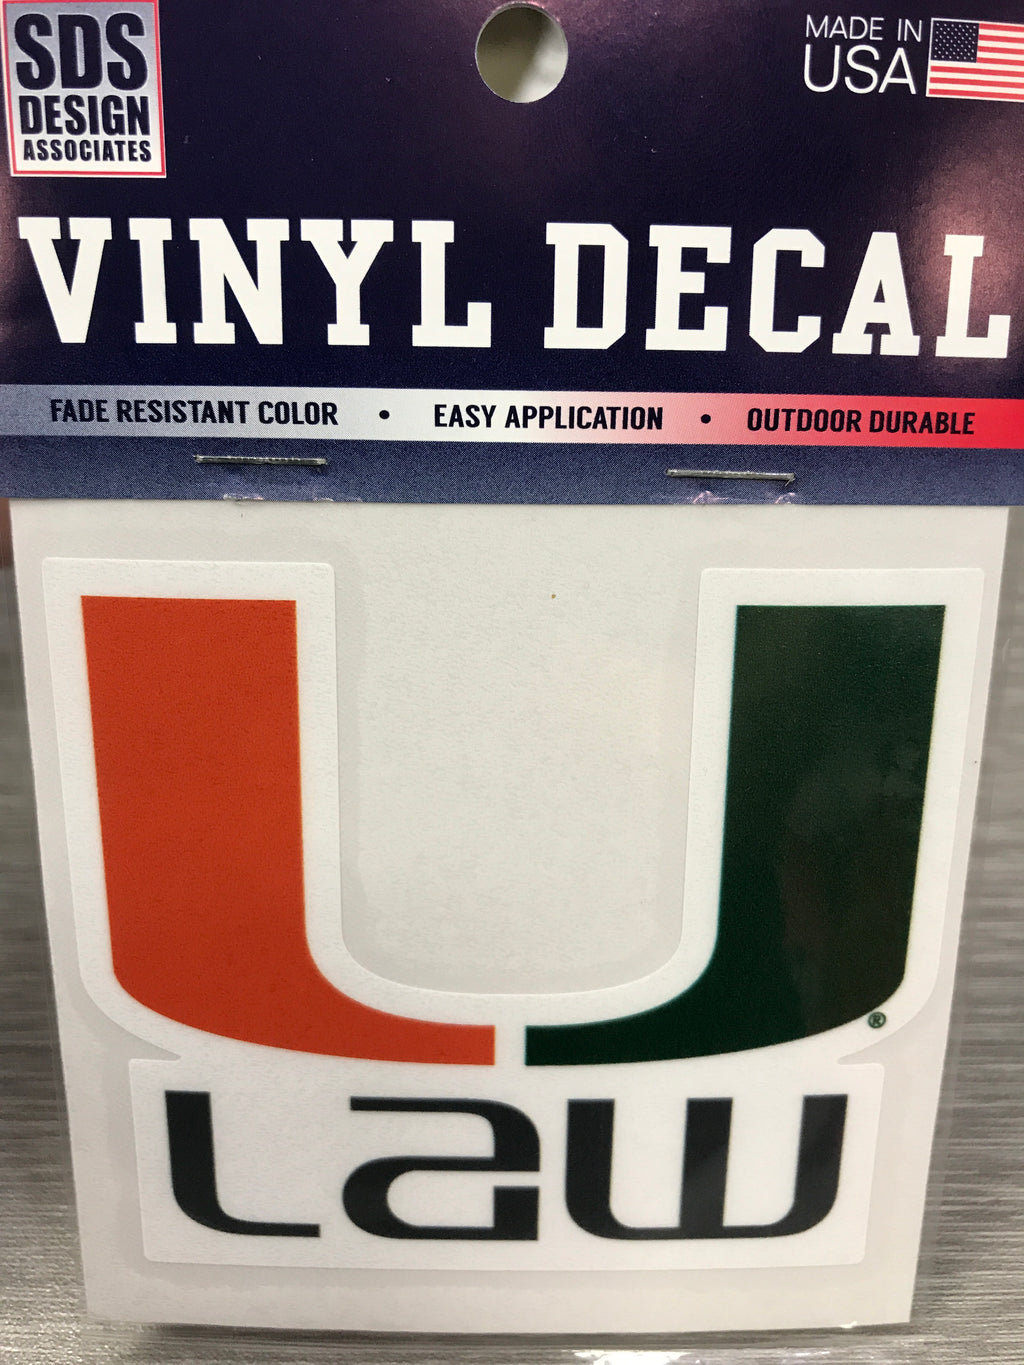 Miami Hurricanes U Law Vinyl Decal - 3""